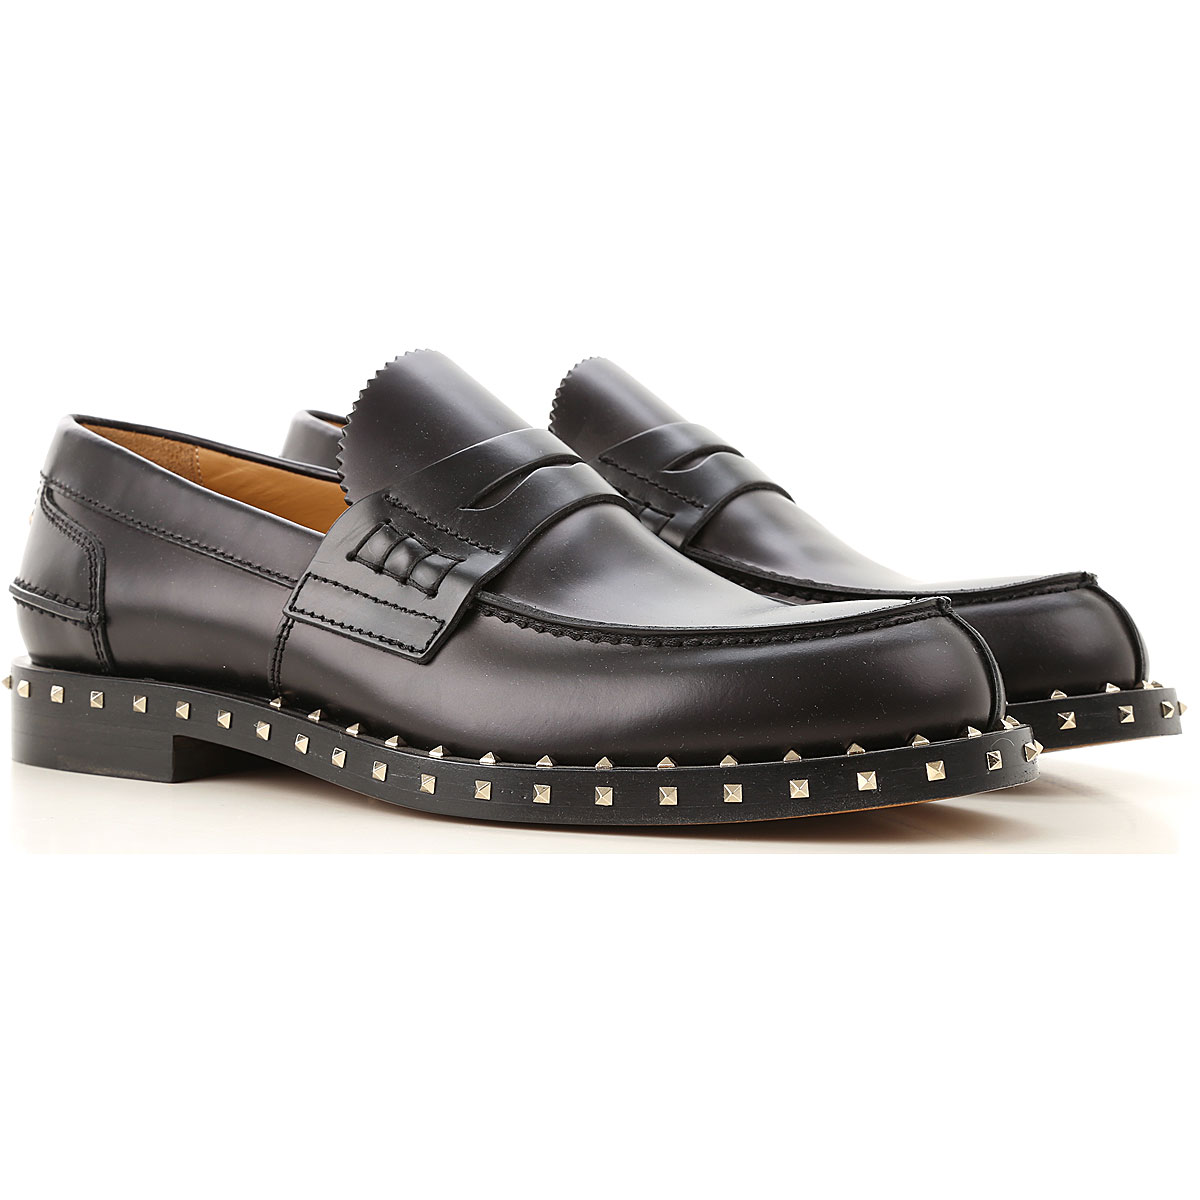 Valentino Garavani Loafers for Men On Sale in Outlet, Black, Leather, 2019, 10 7.5 8 8.5 9 9.5